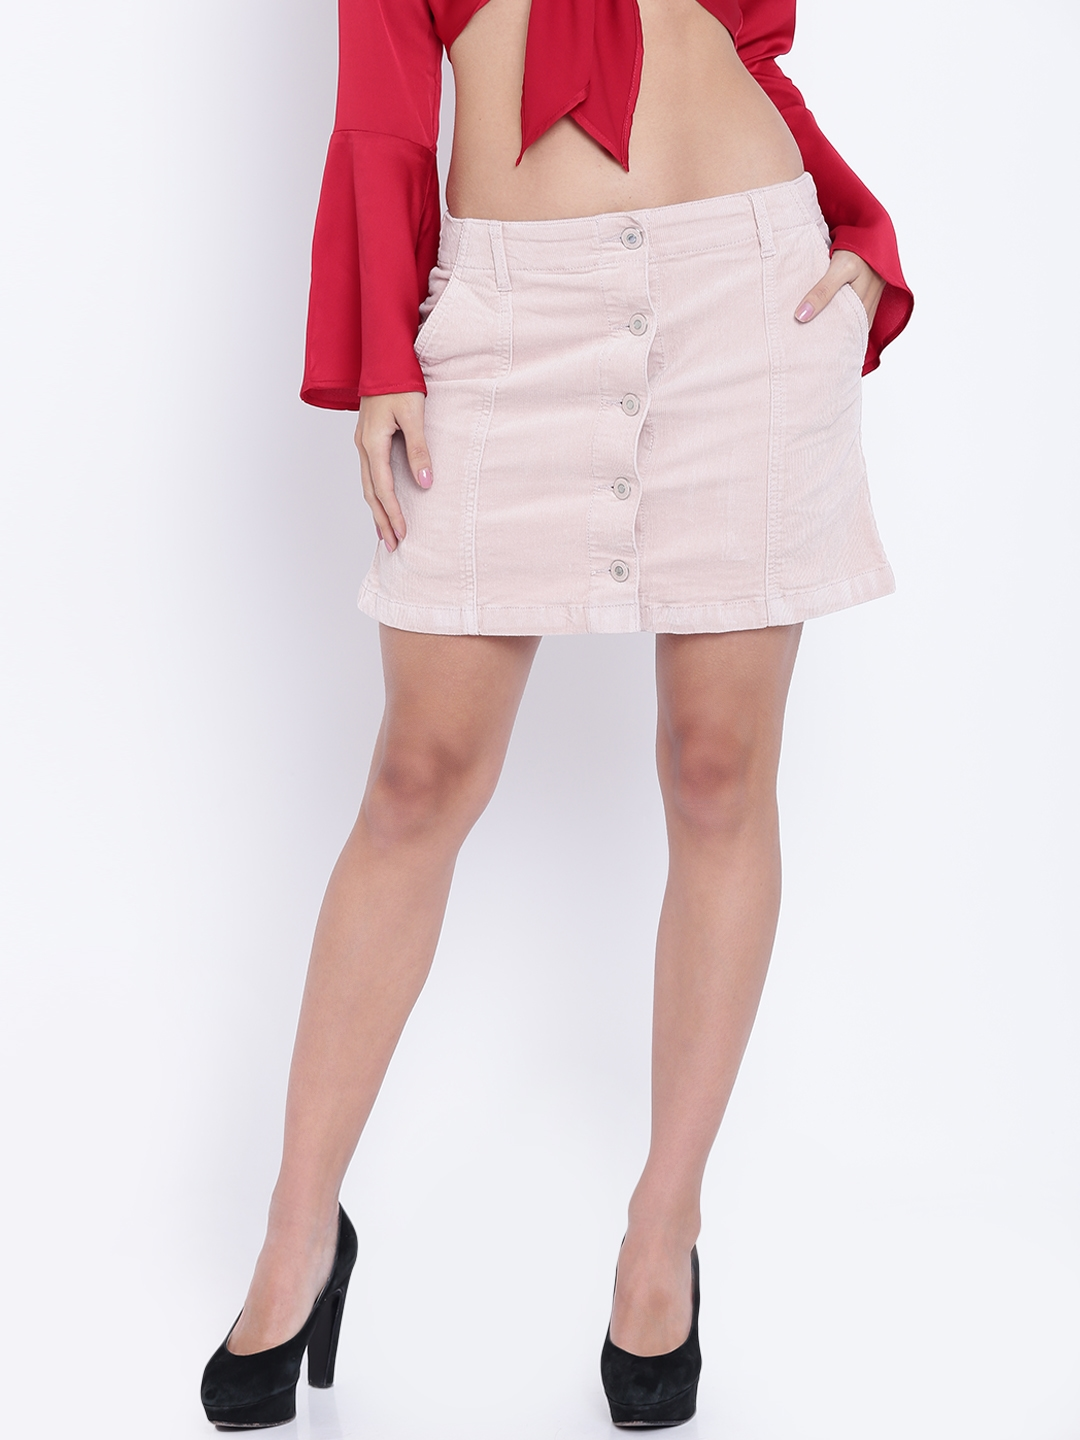 1c080e2d6 Buy FOREVER 21 Dusty Pink Corduroy Mini A Line Skirt - Skirts for ...